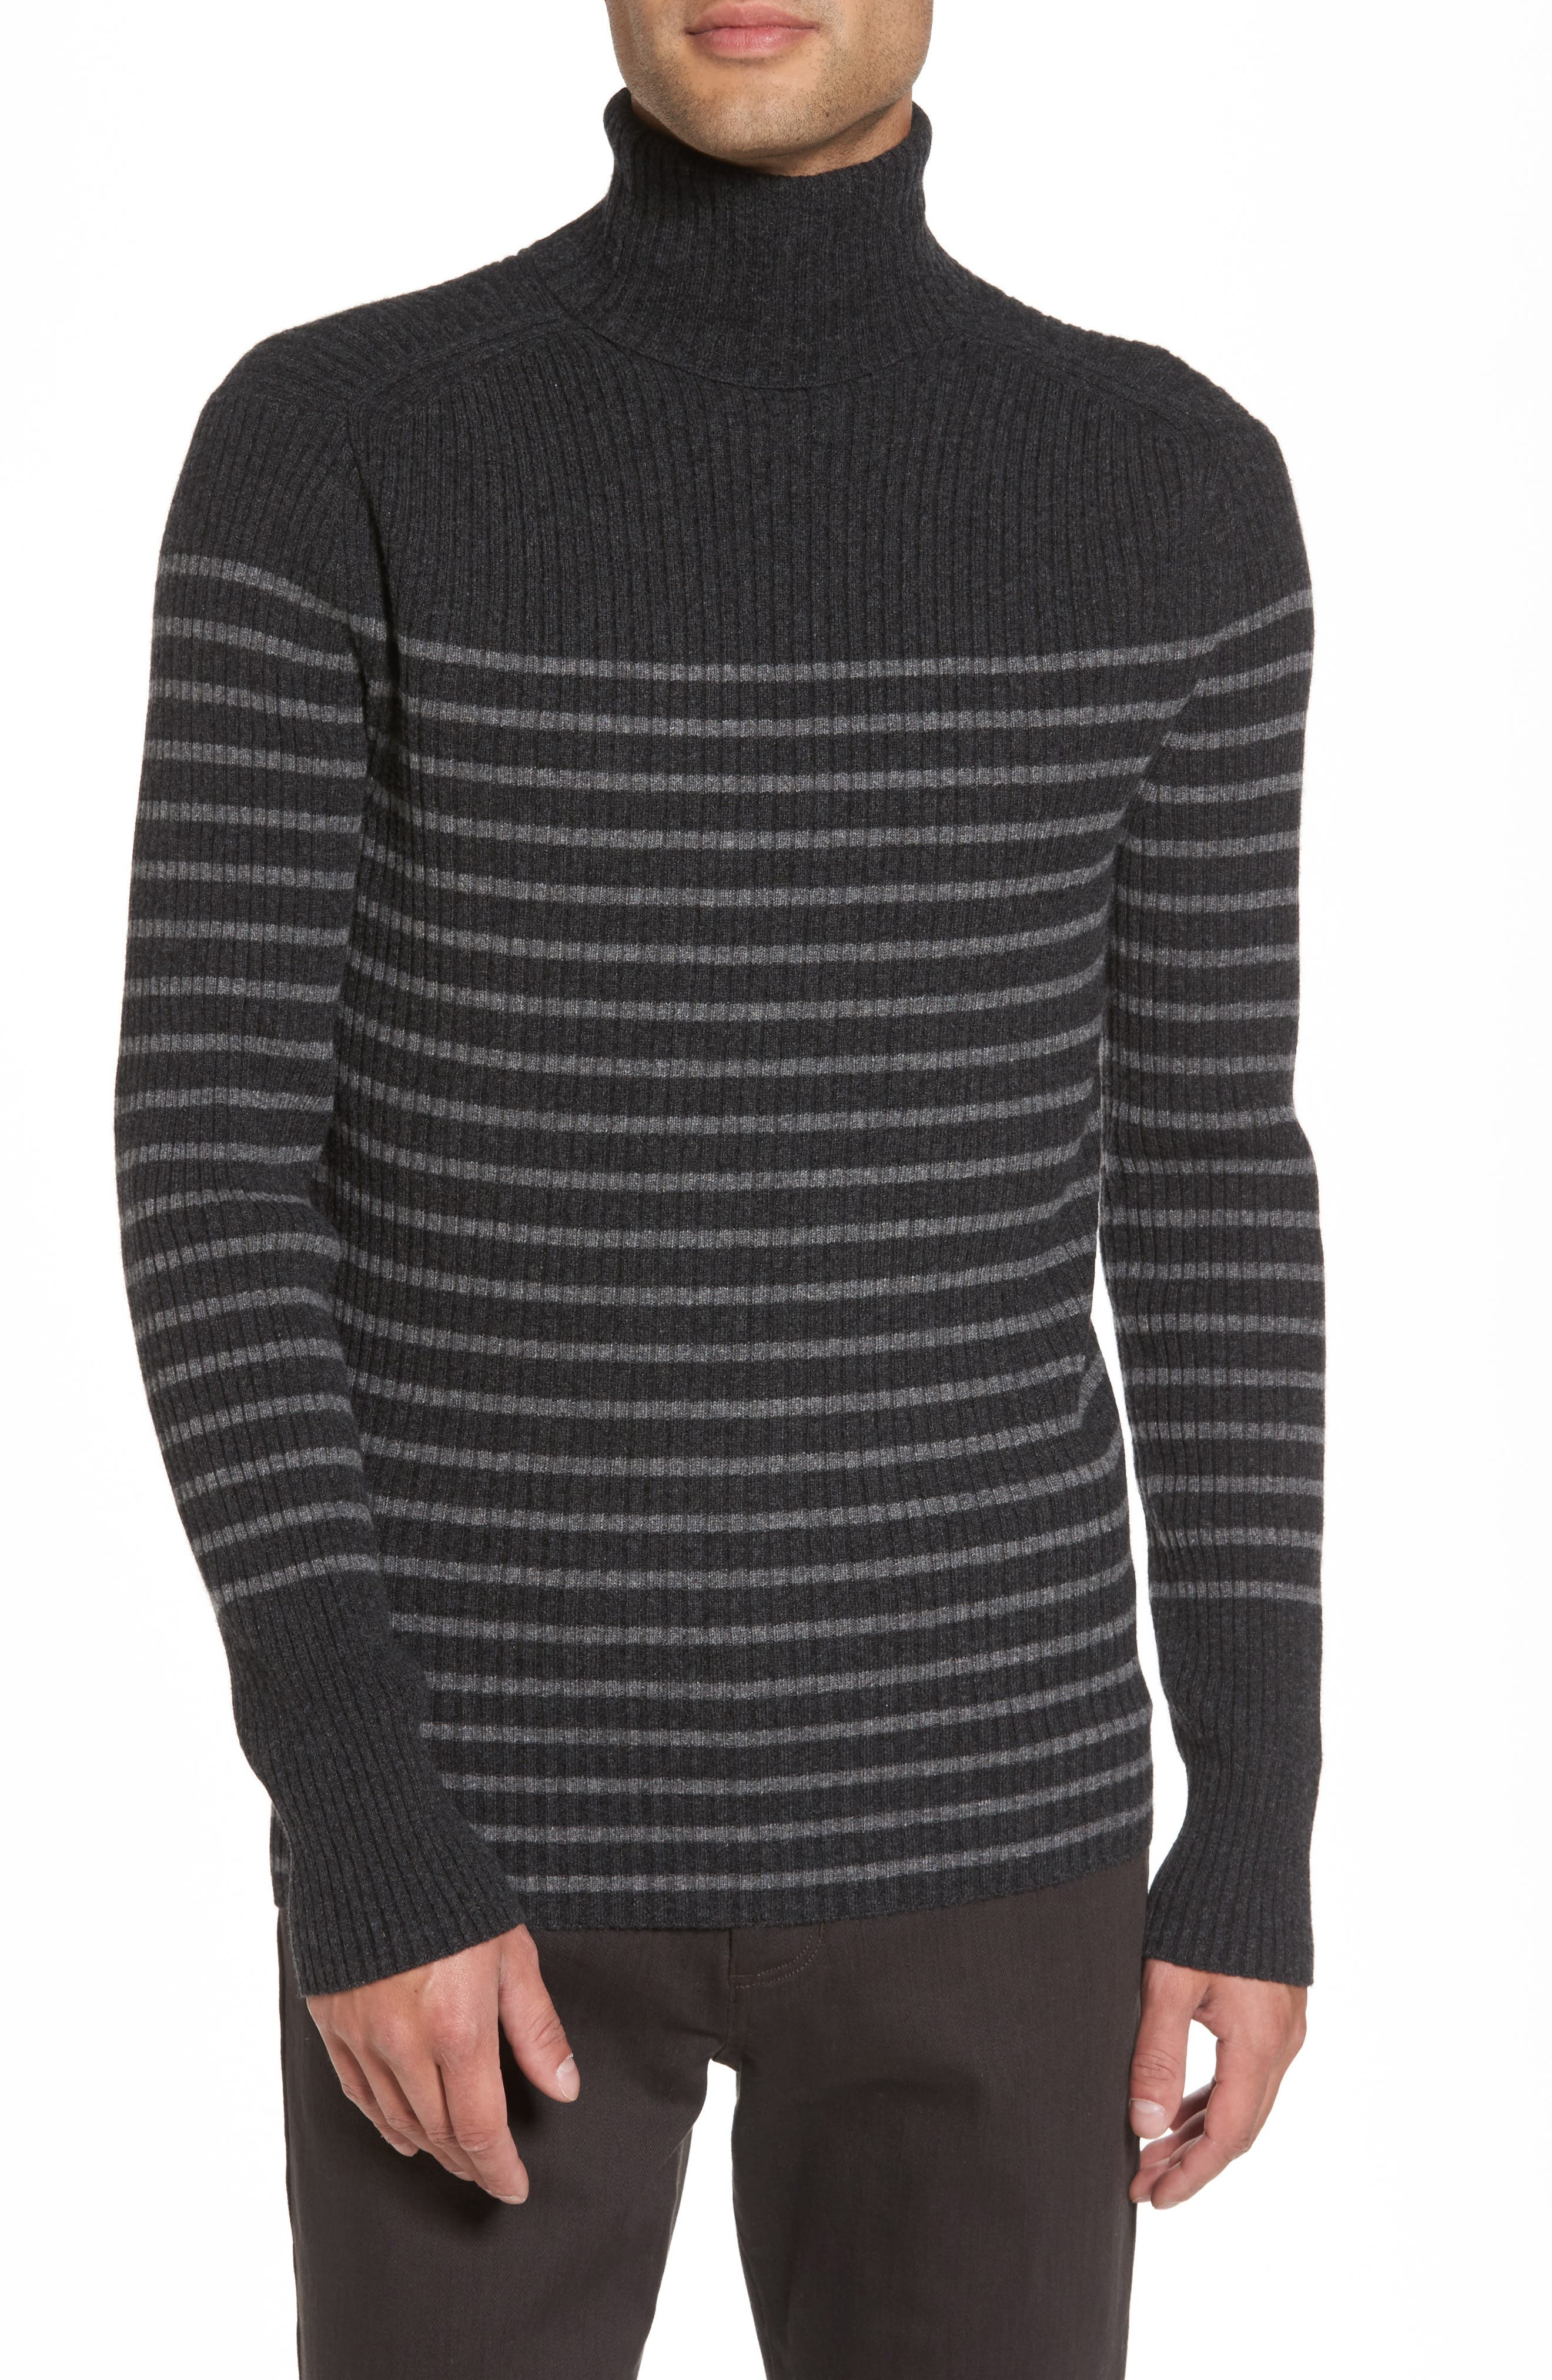 CYJ-shiba Mens Classic Turtleneck Solid Pullover Long Sleeve Knitted Sweaters